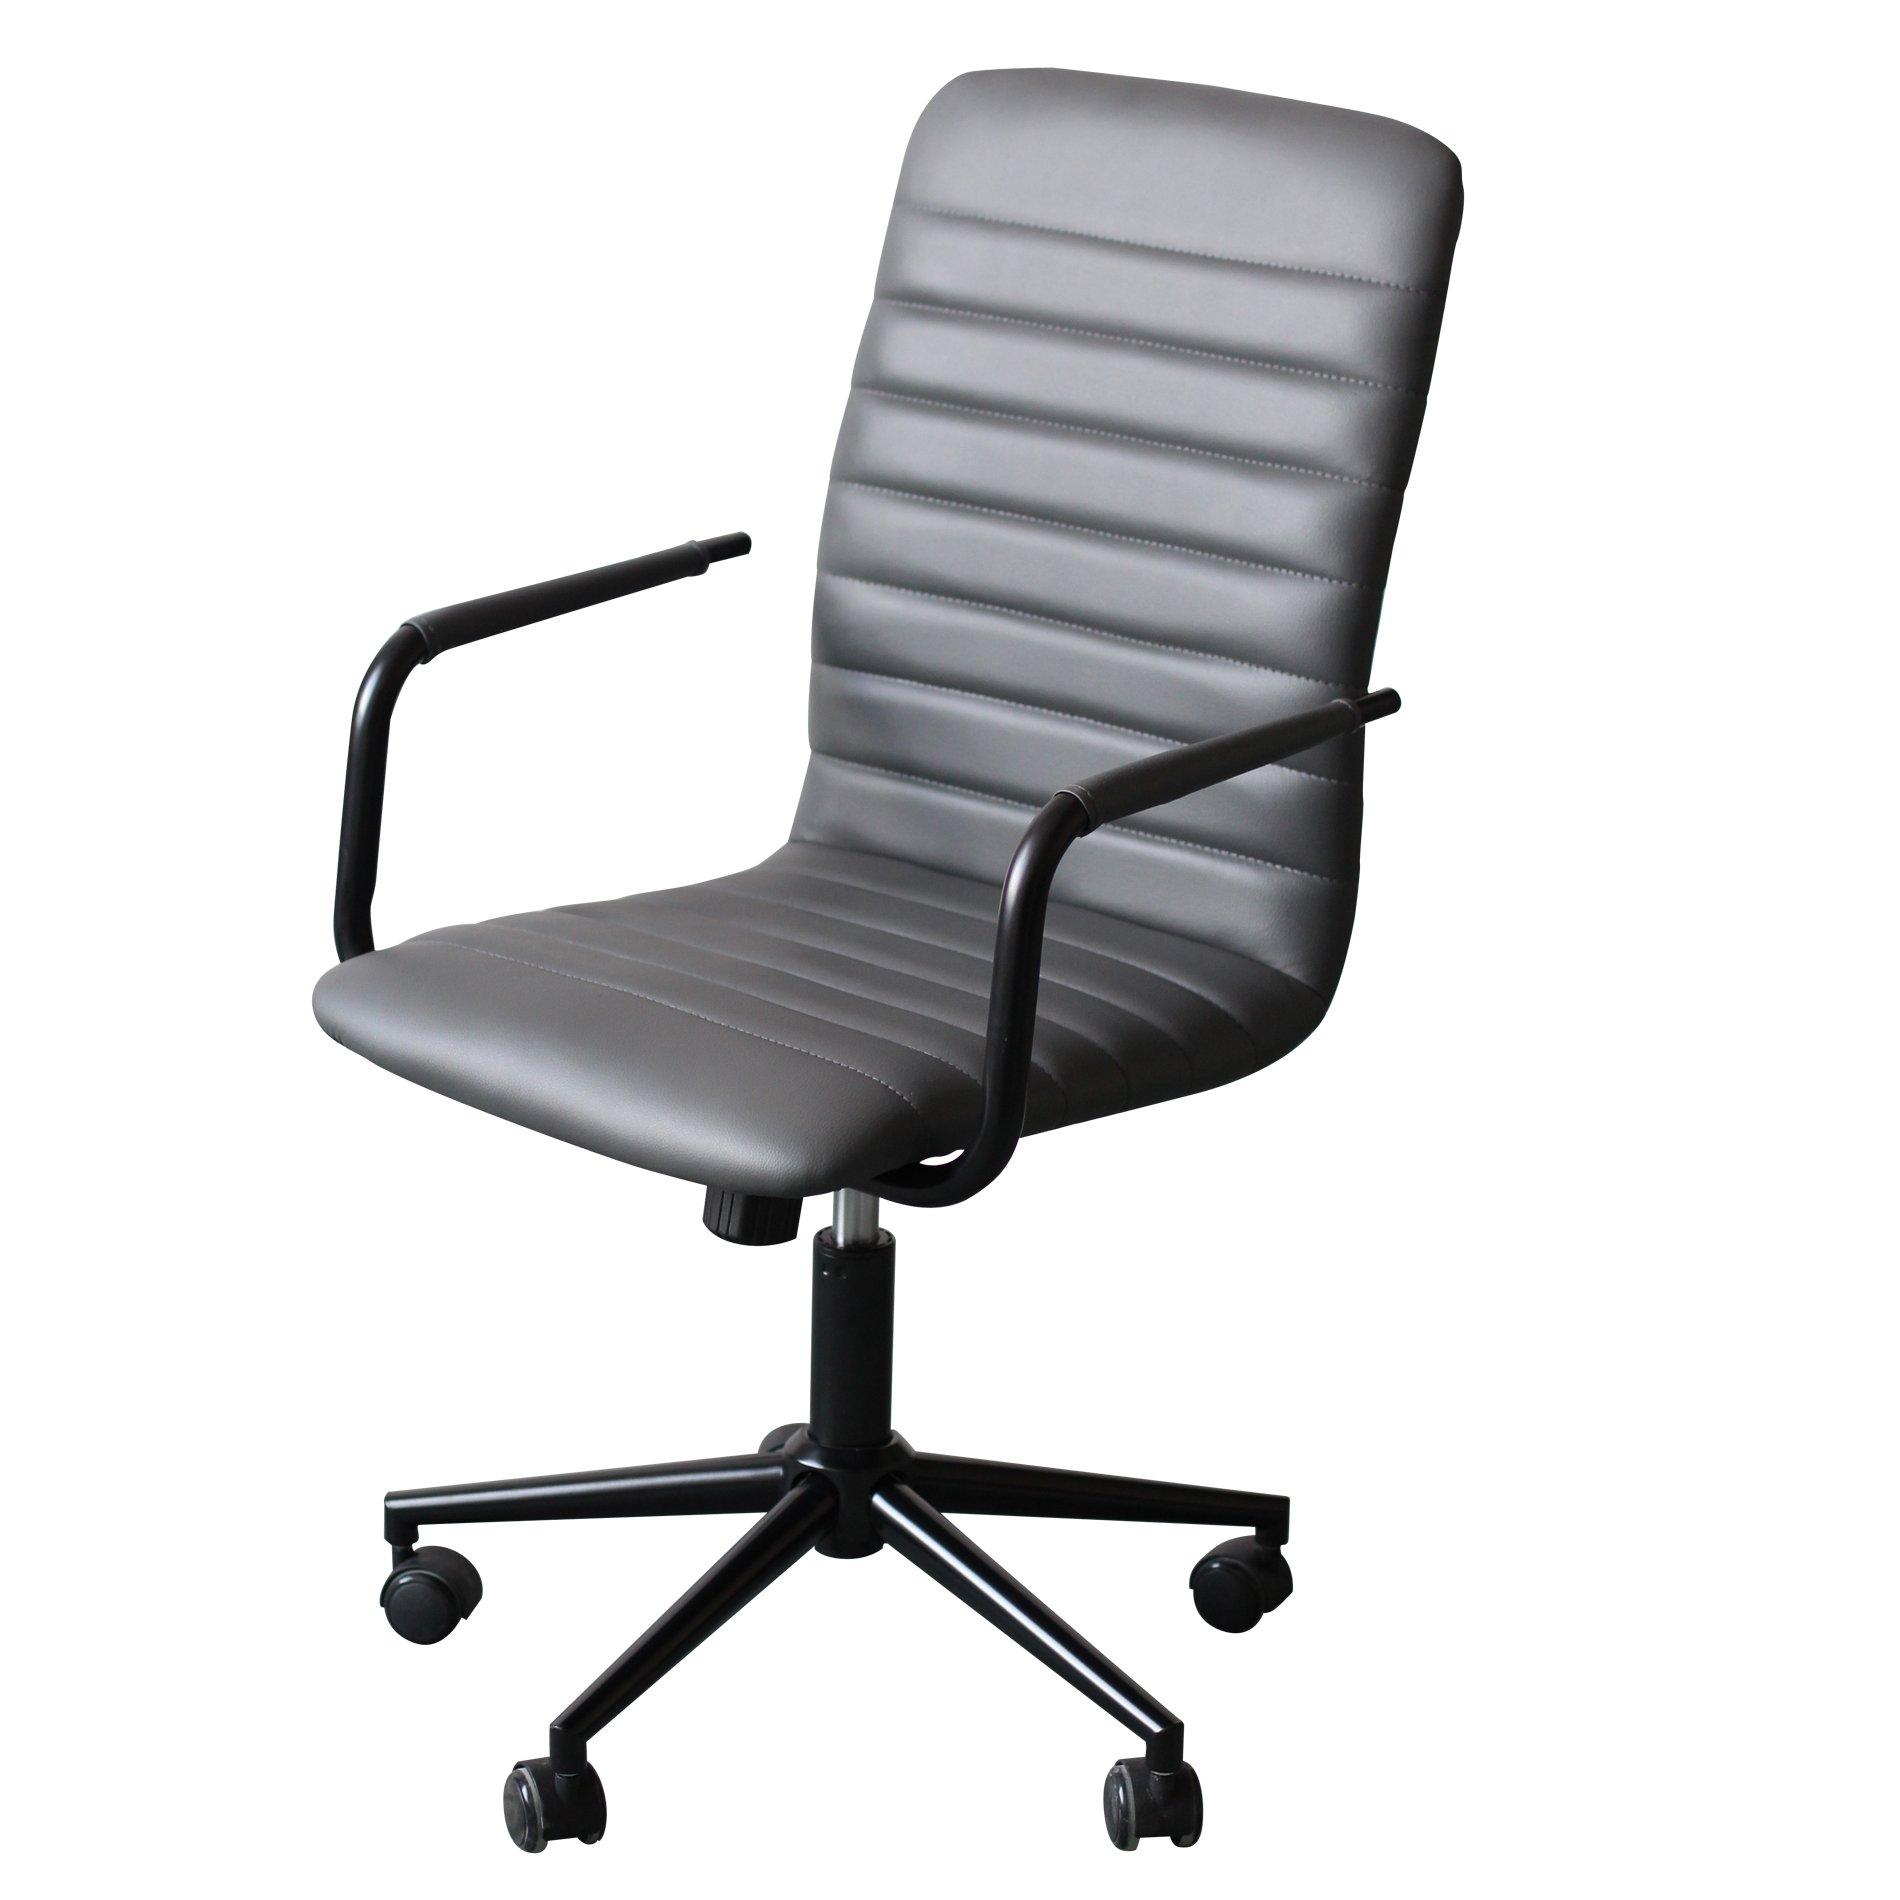 IDS Office Selection Home Office Desk Chair Modern Stripe Design with Solid Wheel Casters, Grey Leather